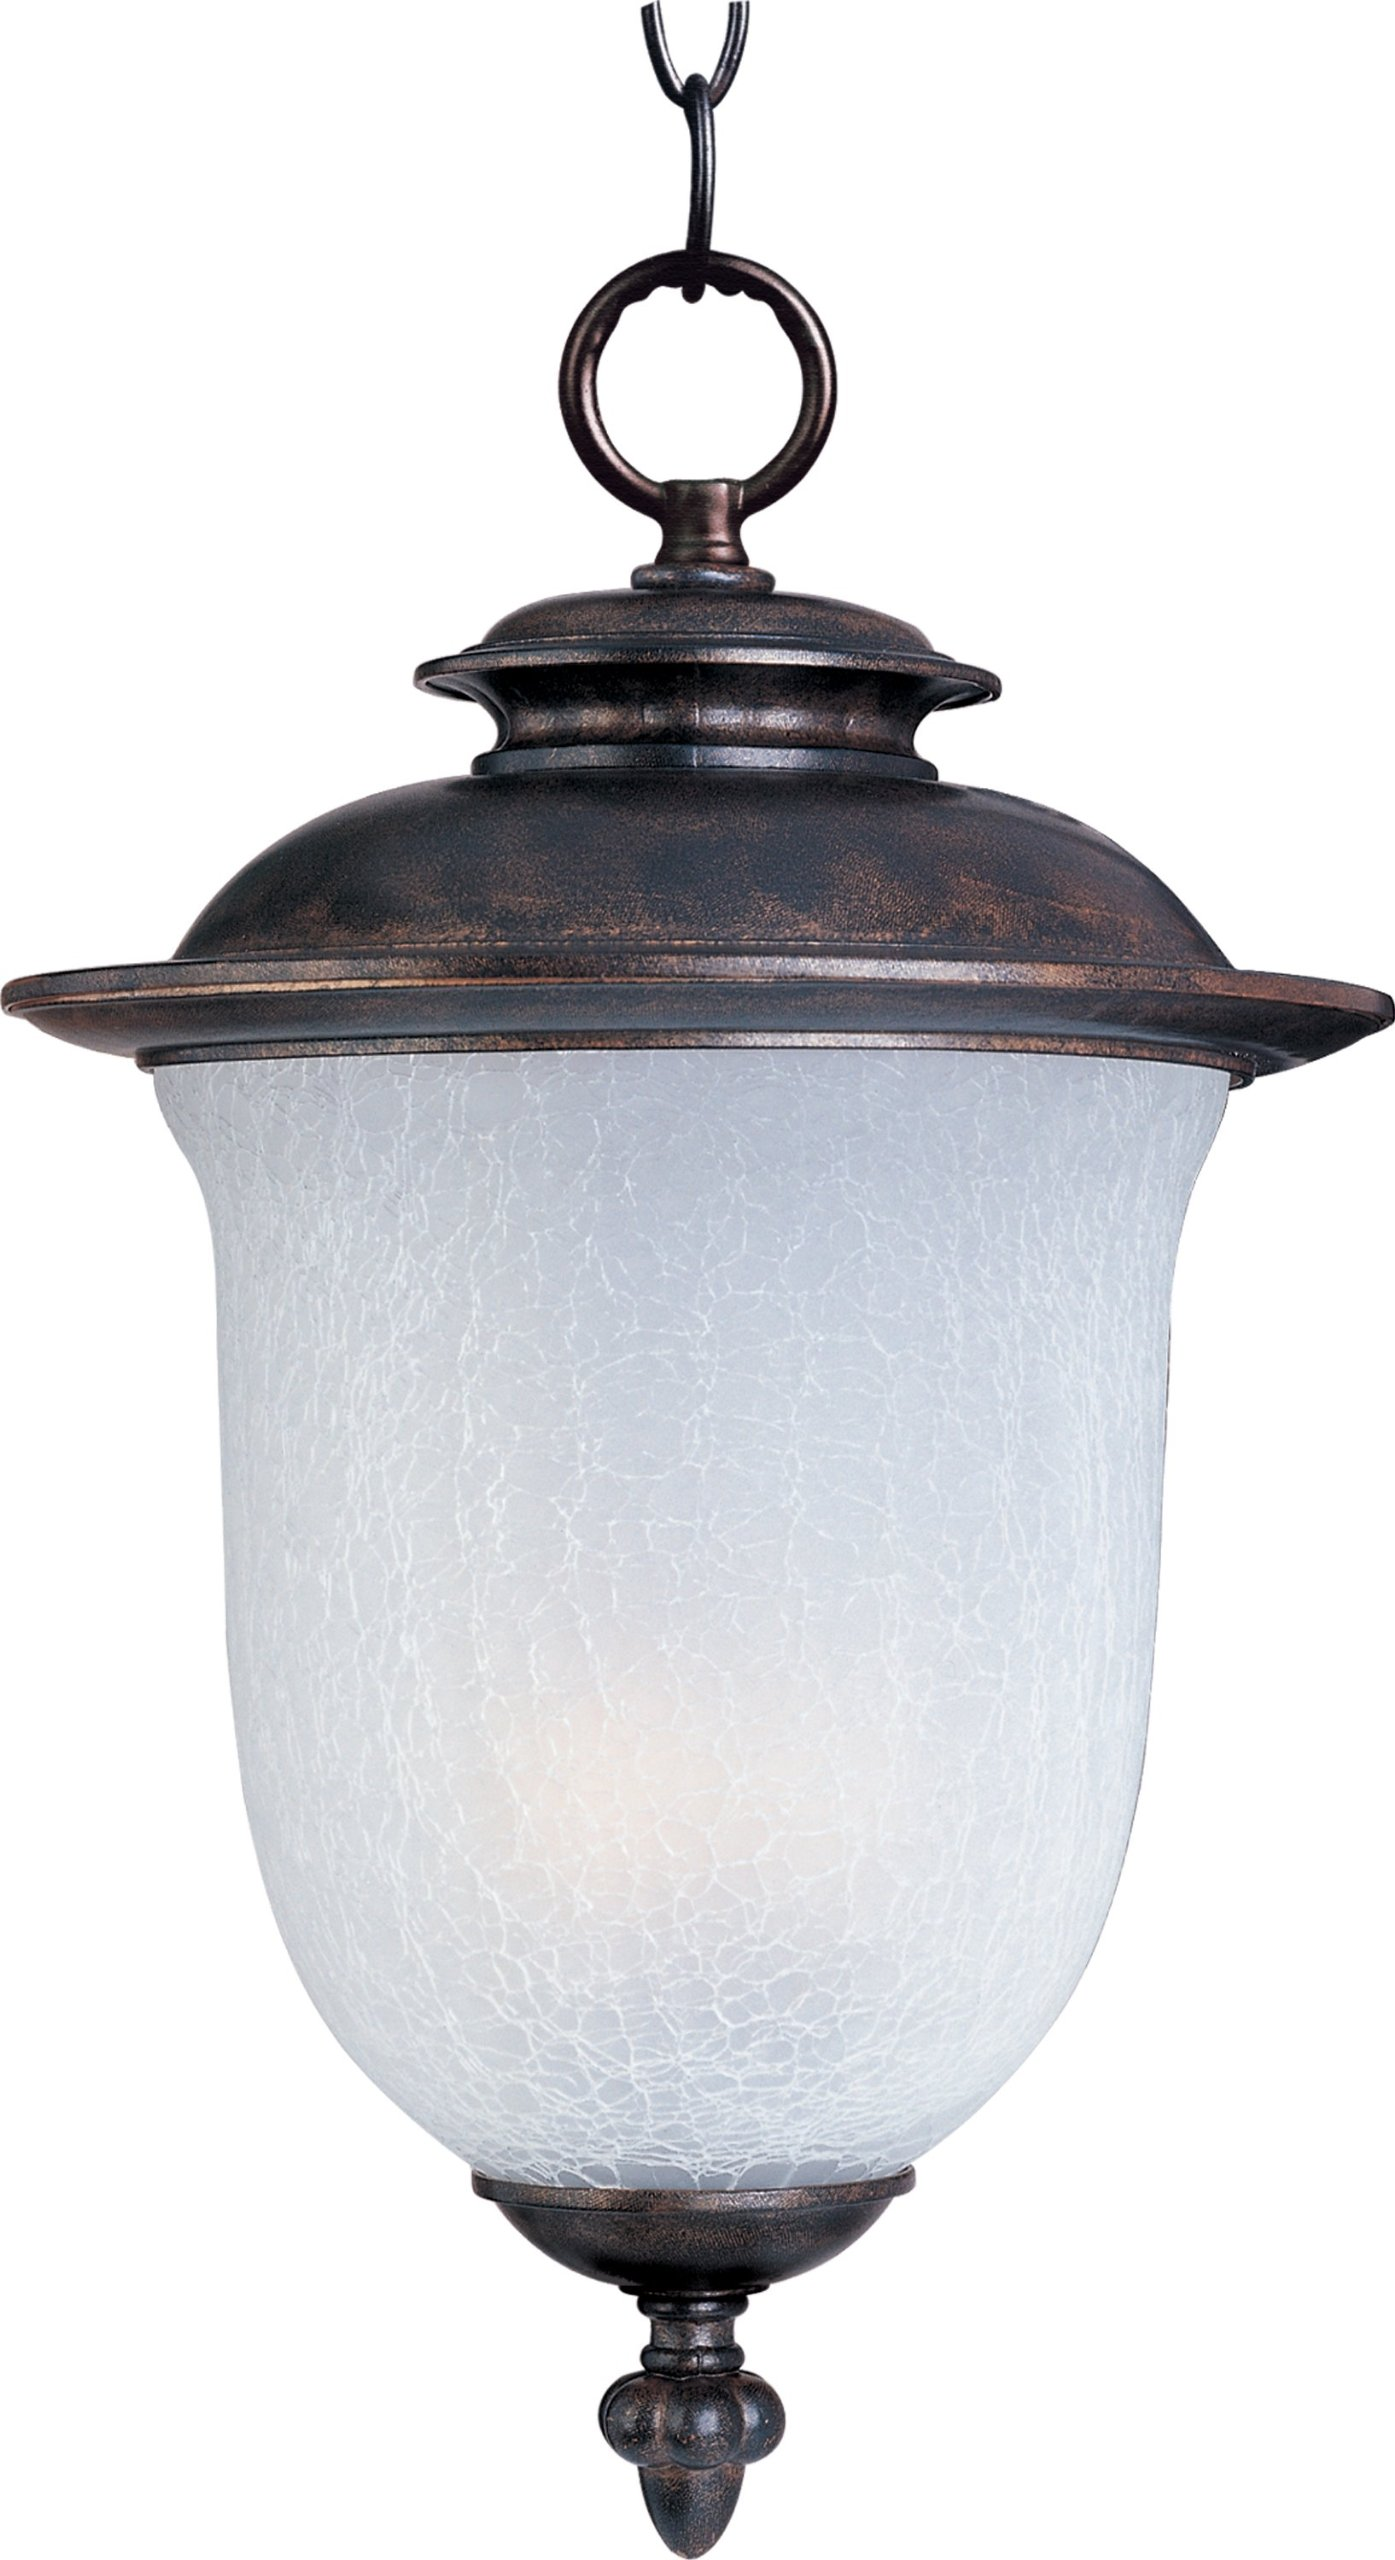 Maxim 55199FCCH Cambria LED 1-Light Outdoor Hanging Lantern, Chocolate Finish, Frost Crackle Glass, LED Bulb , 4W Max., Dry Safety Rating, 2700K Color Temp, Standard Dimmable, Glass Shade Material, 2240 Rated Lumens